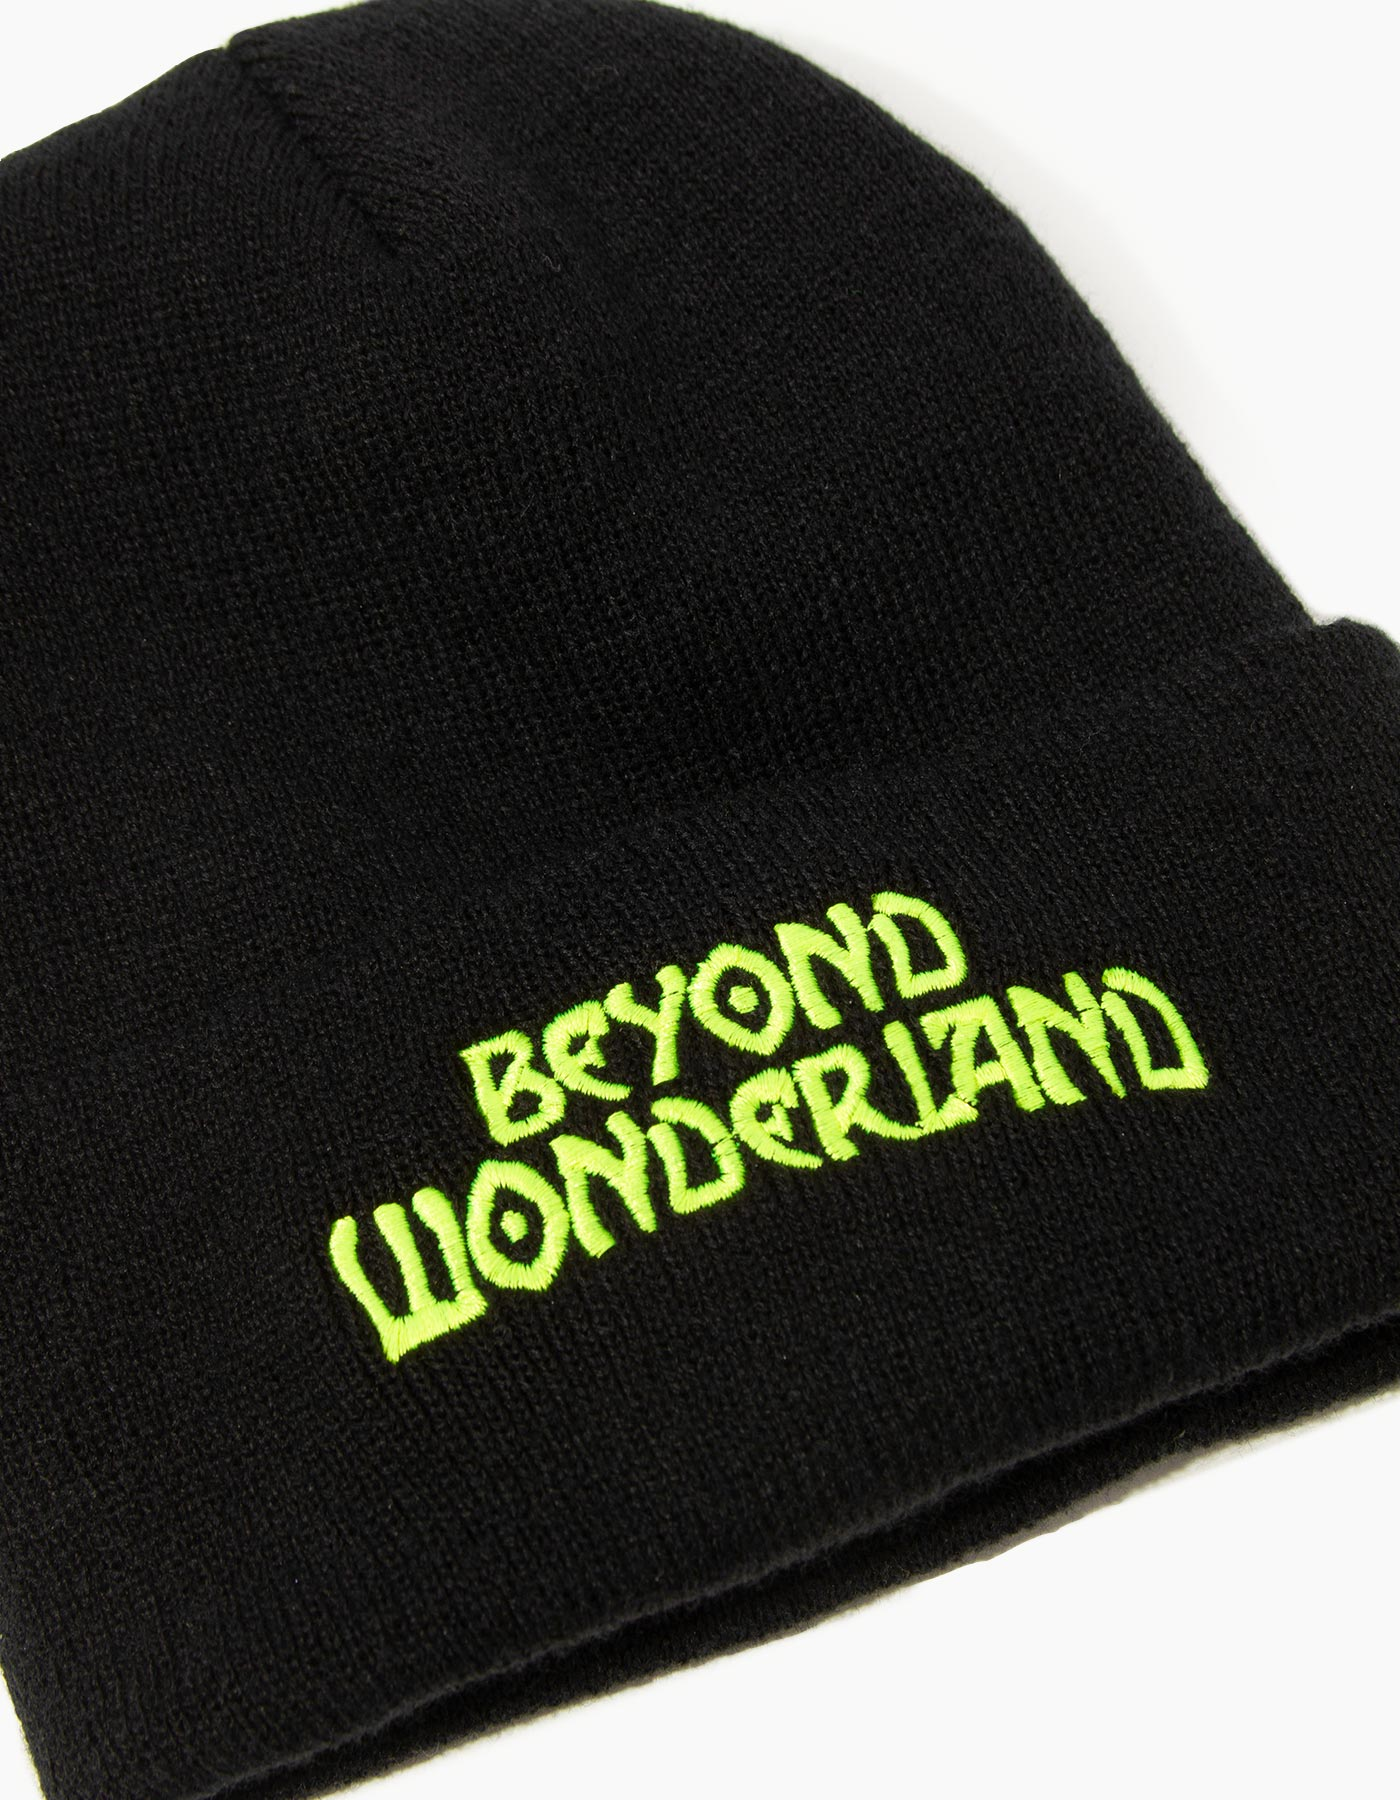 Beyond Wonderland Nightfall Beanie